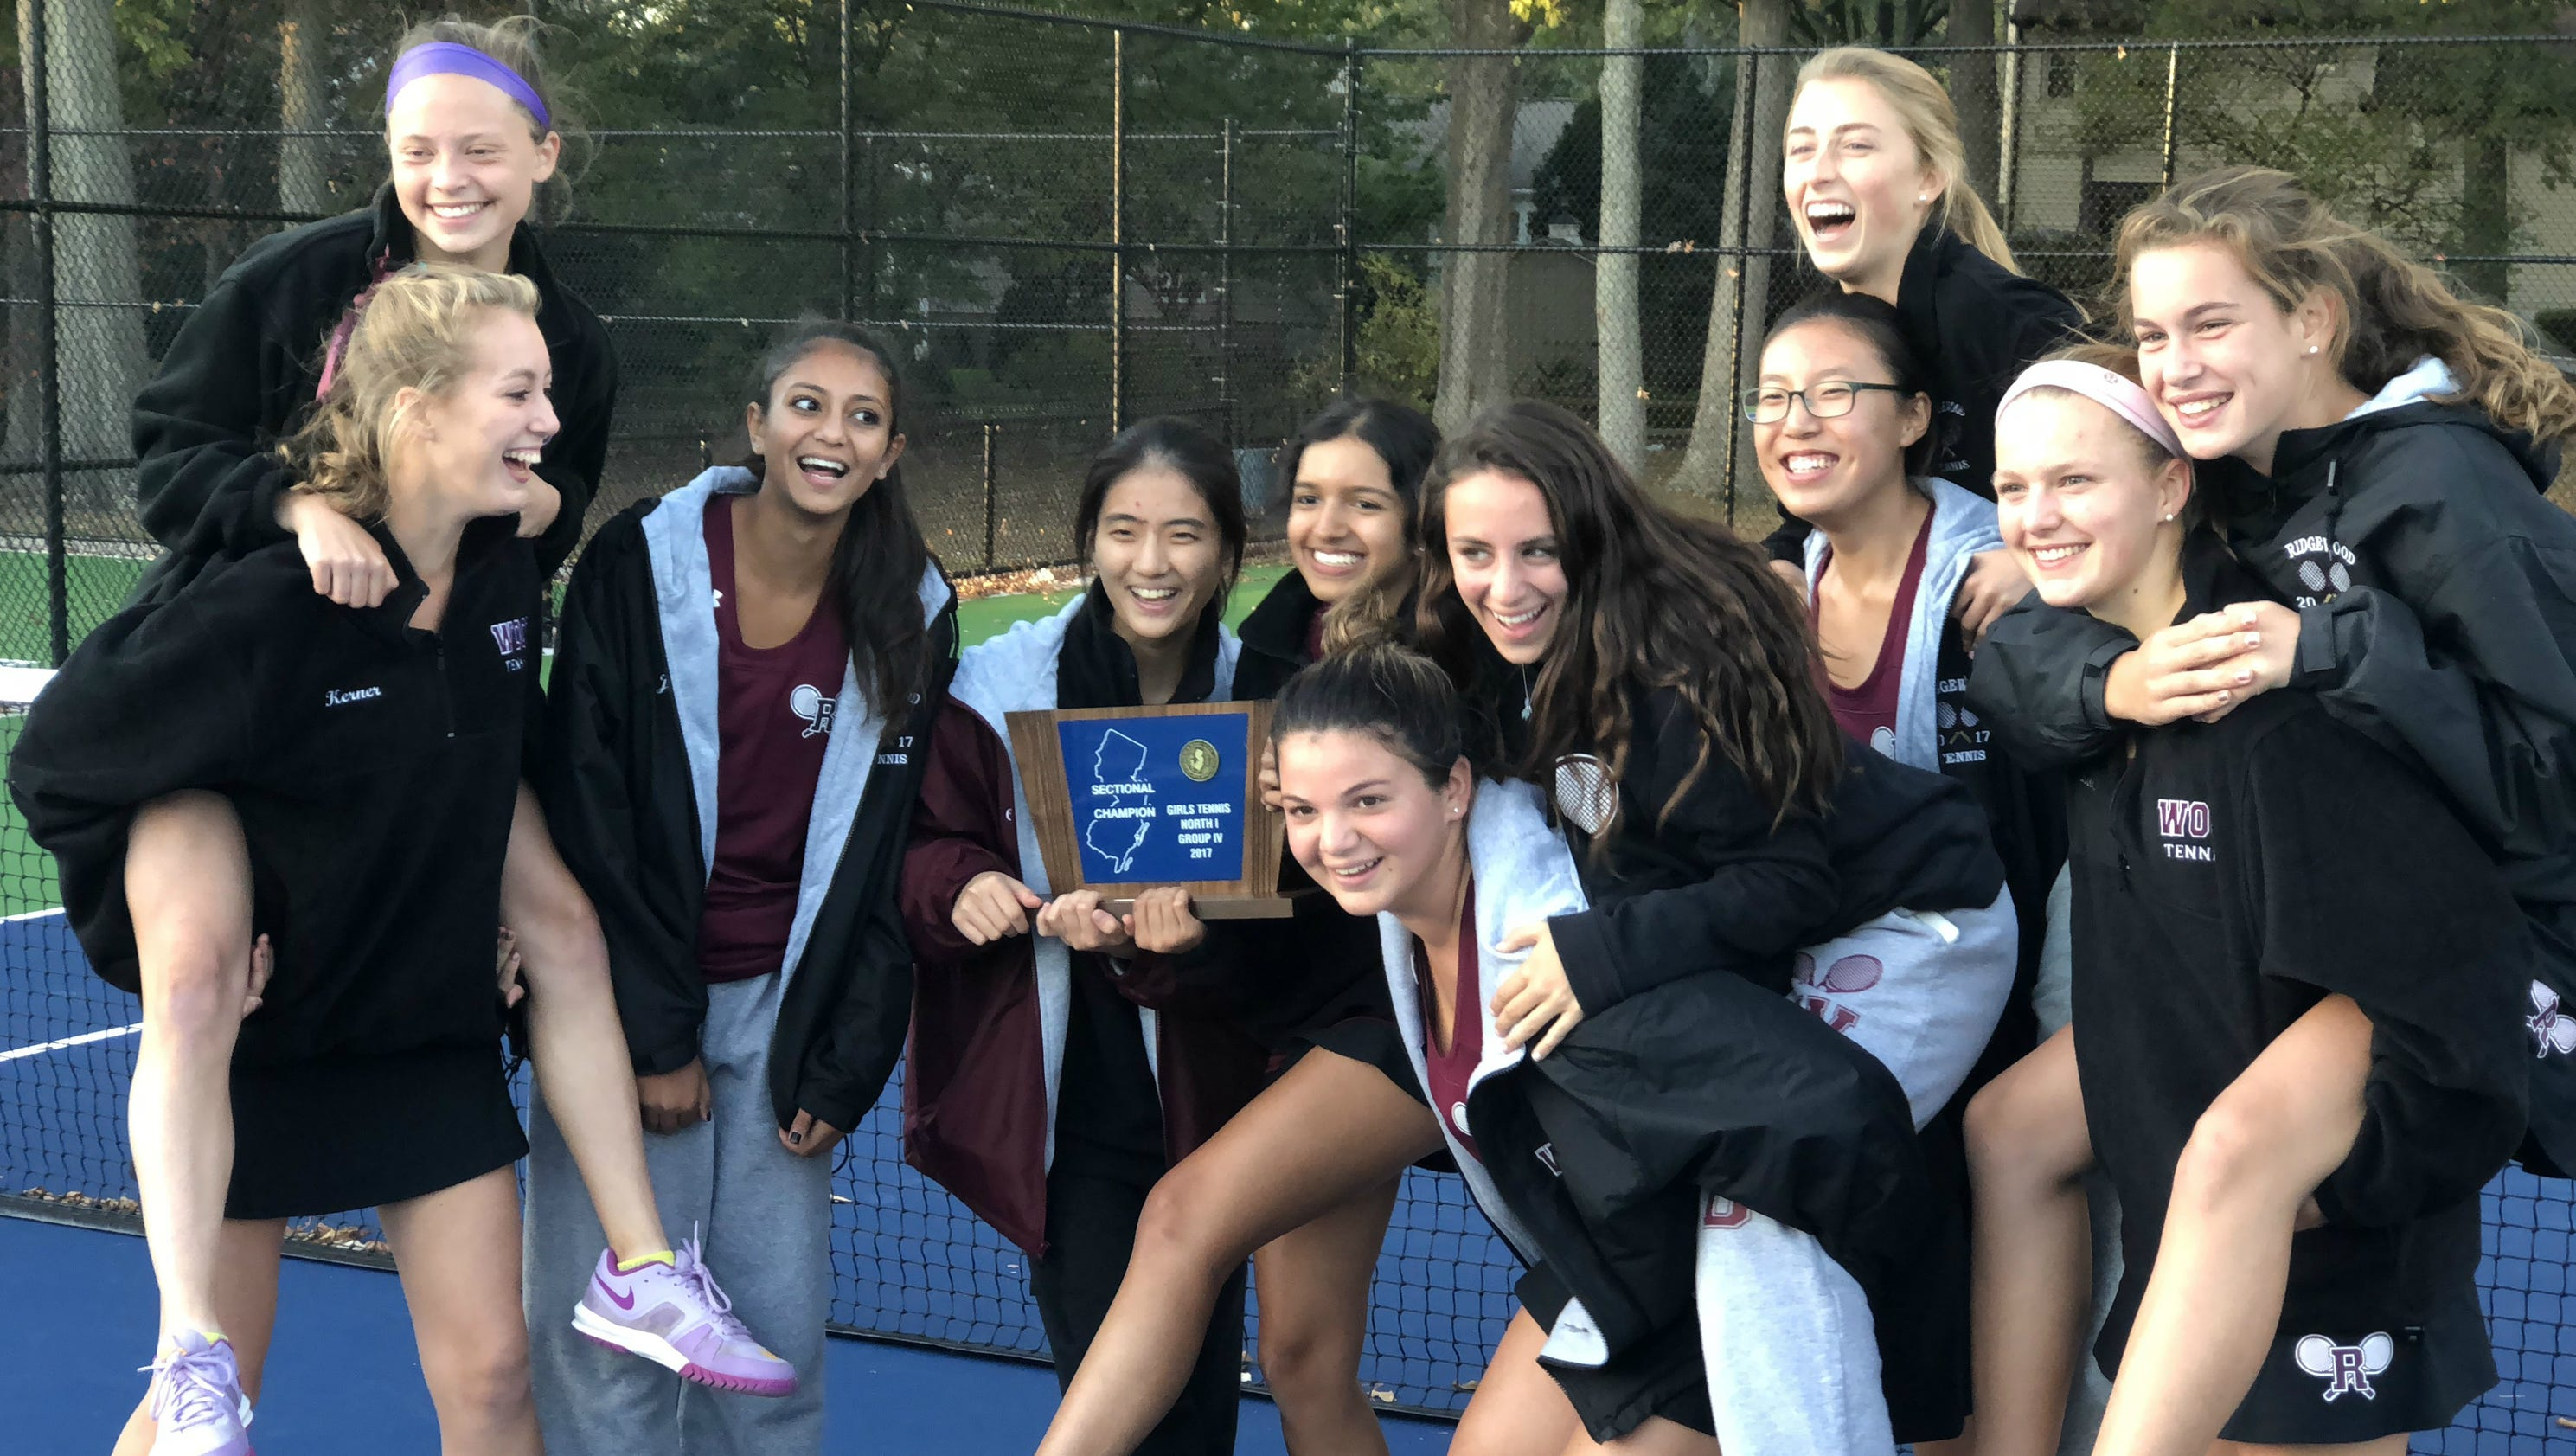 ridgewood single girls Immaculate heart academy is an all girls catholic regional private high school located in bergen county new jersey this all girls private high school serves 9th-12th.